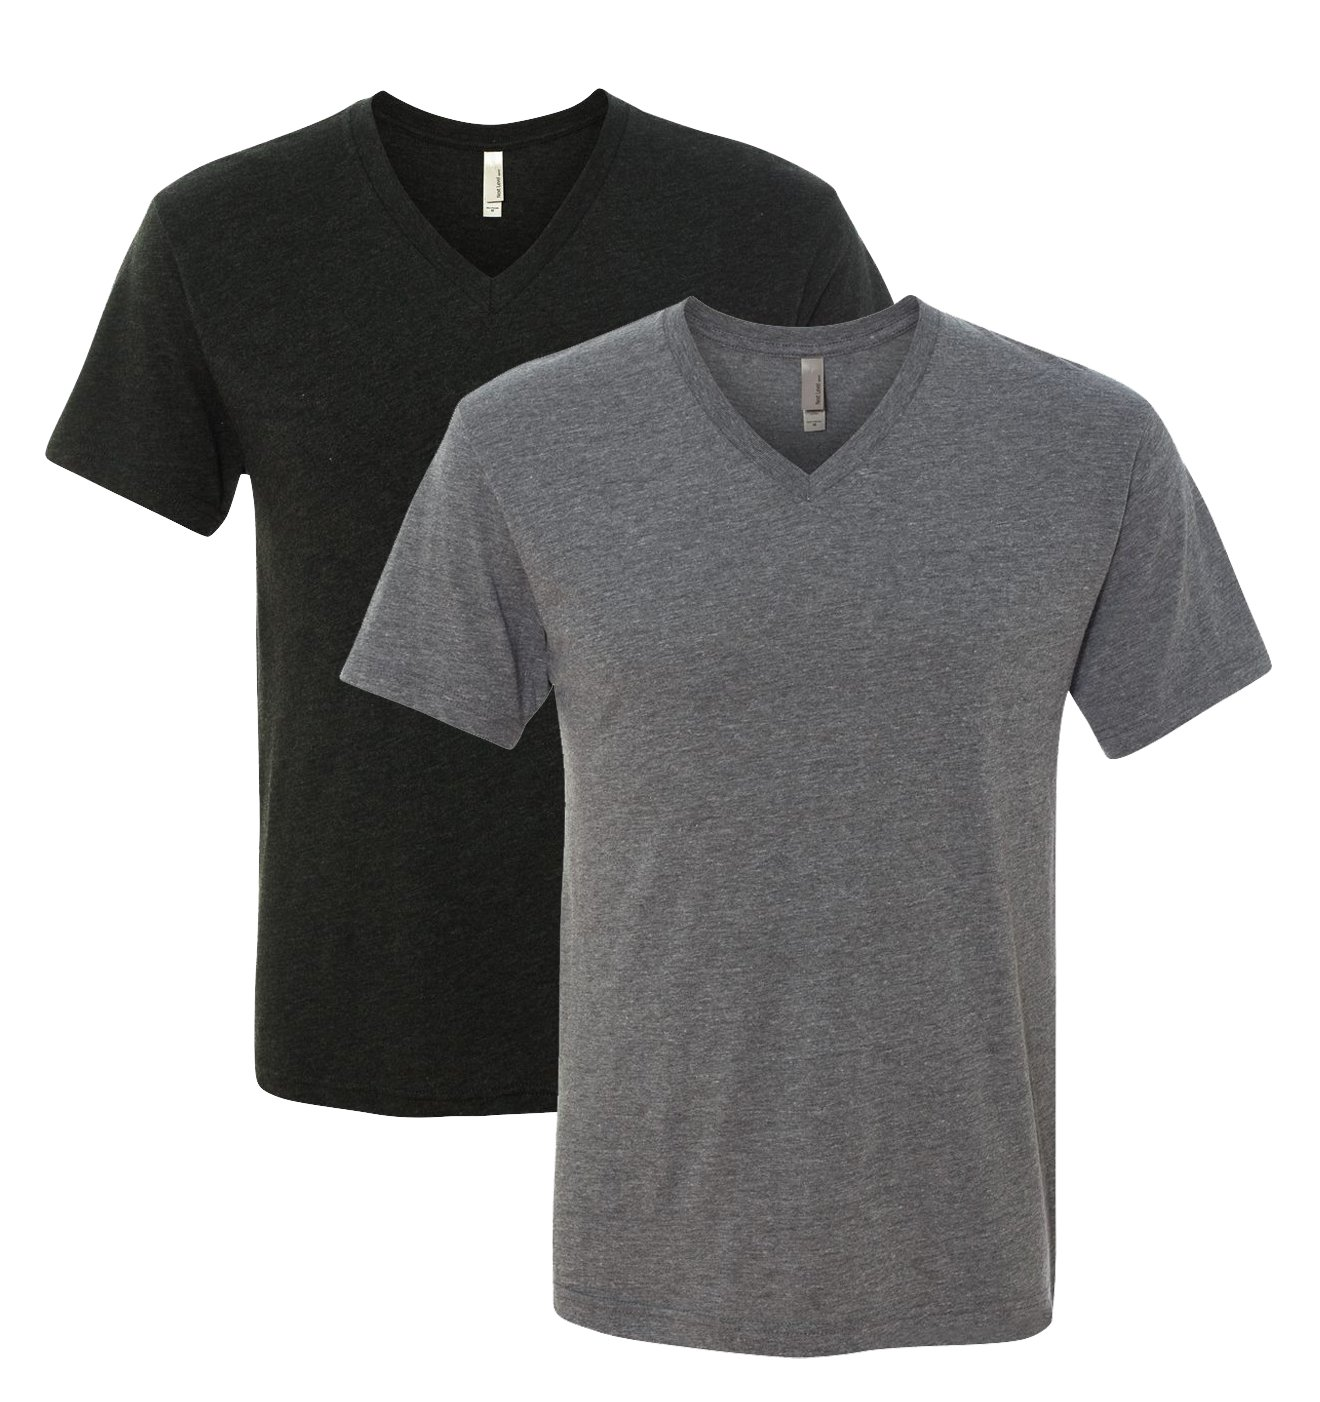 Next Level Triblend Vee Tee, Vintage Black + Premium Heather (2 Pack), Large by Next Level